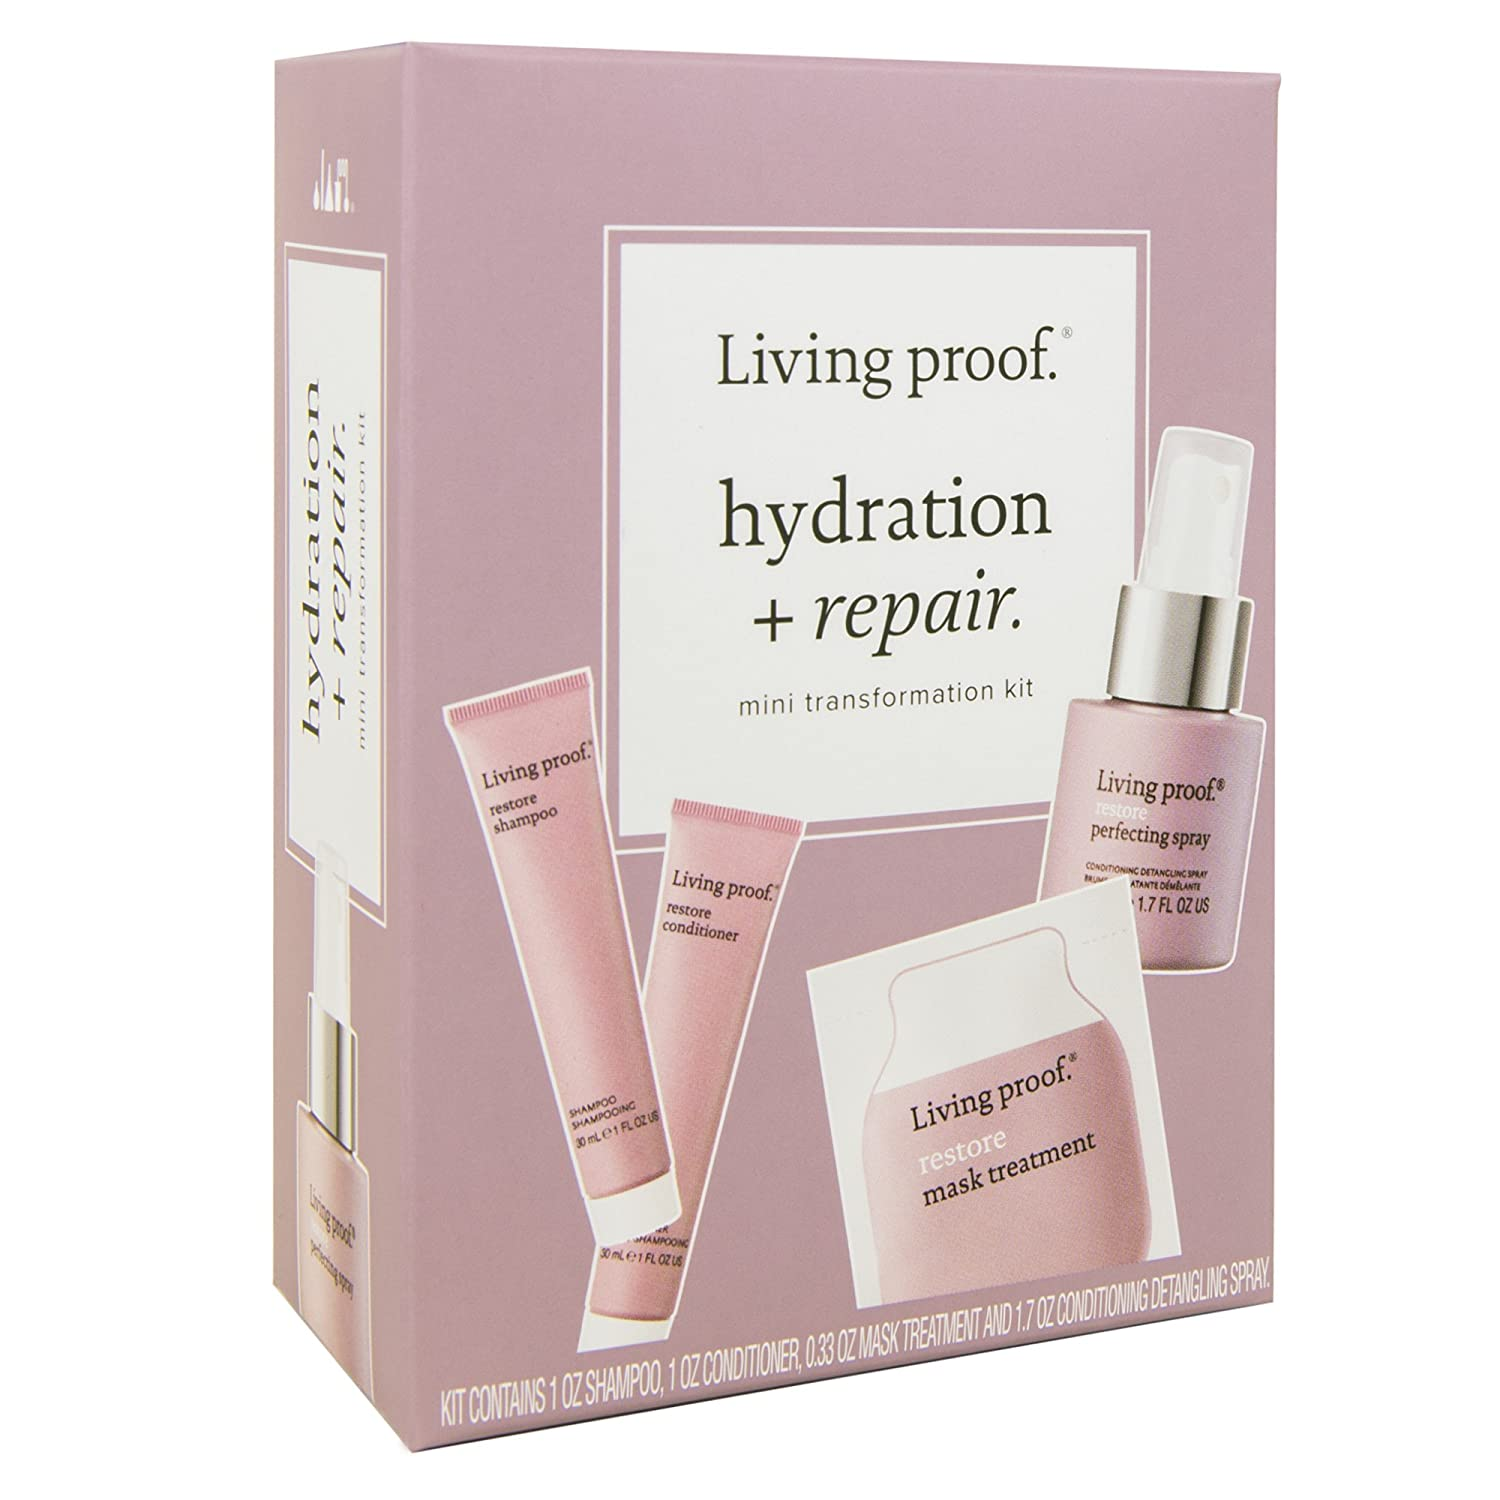 Living Proof Hydration + Repair Mini Transformation Kit by Living Proof